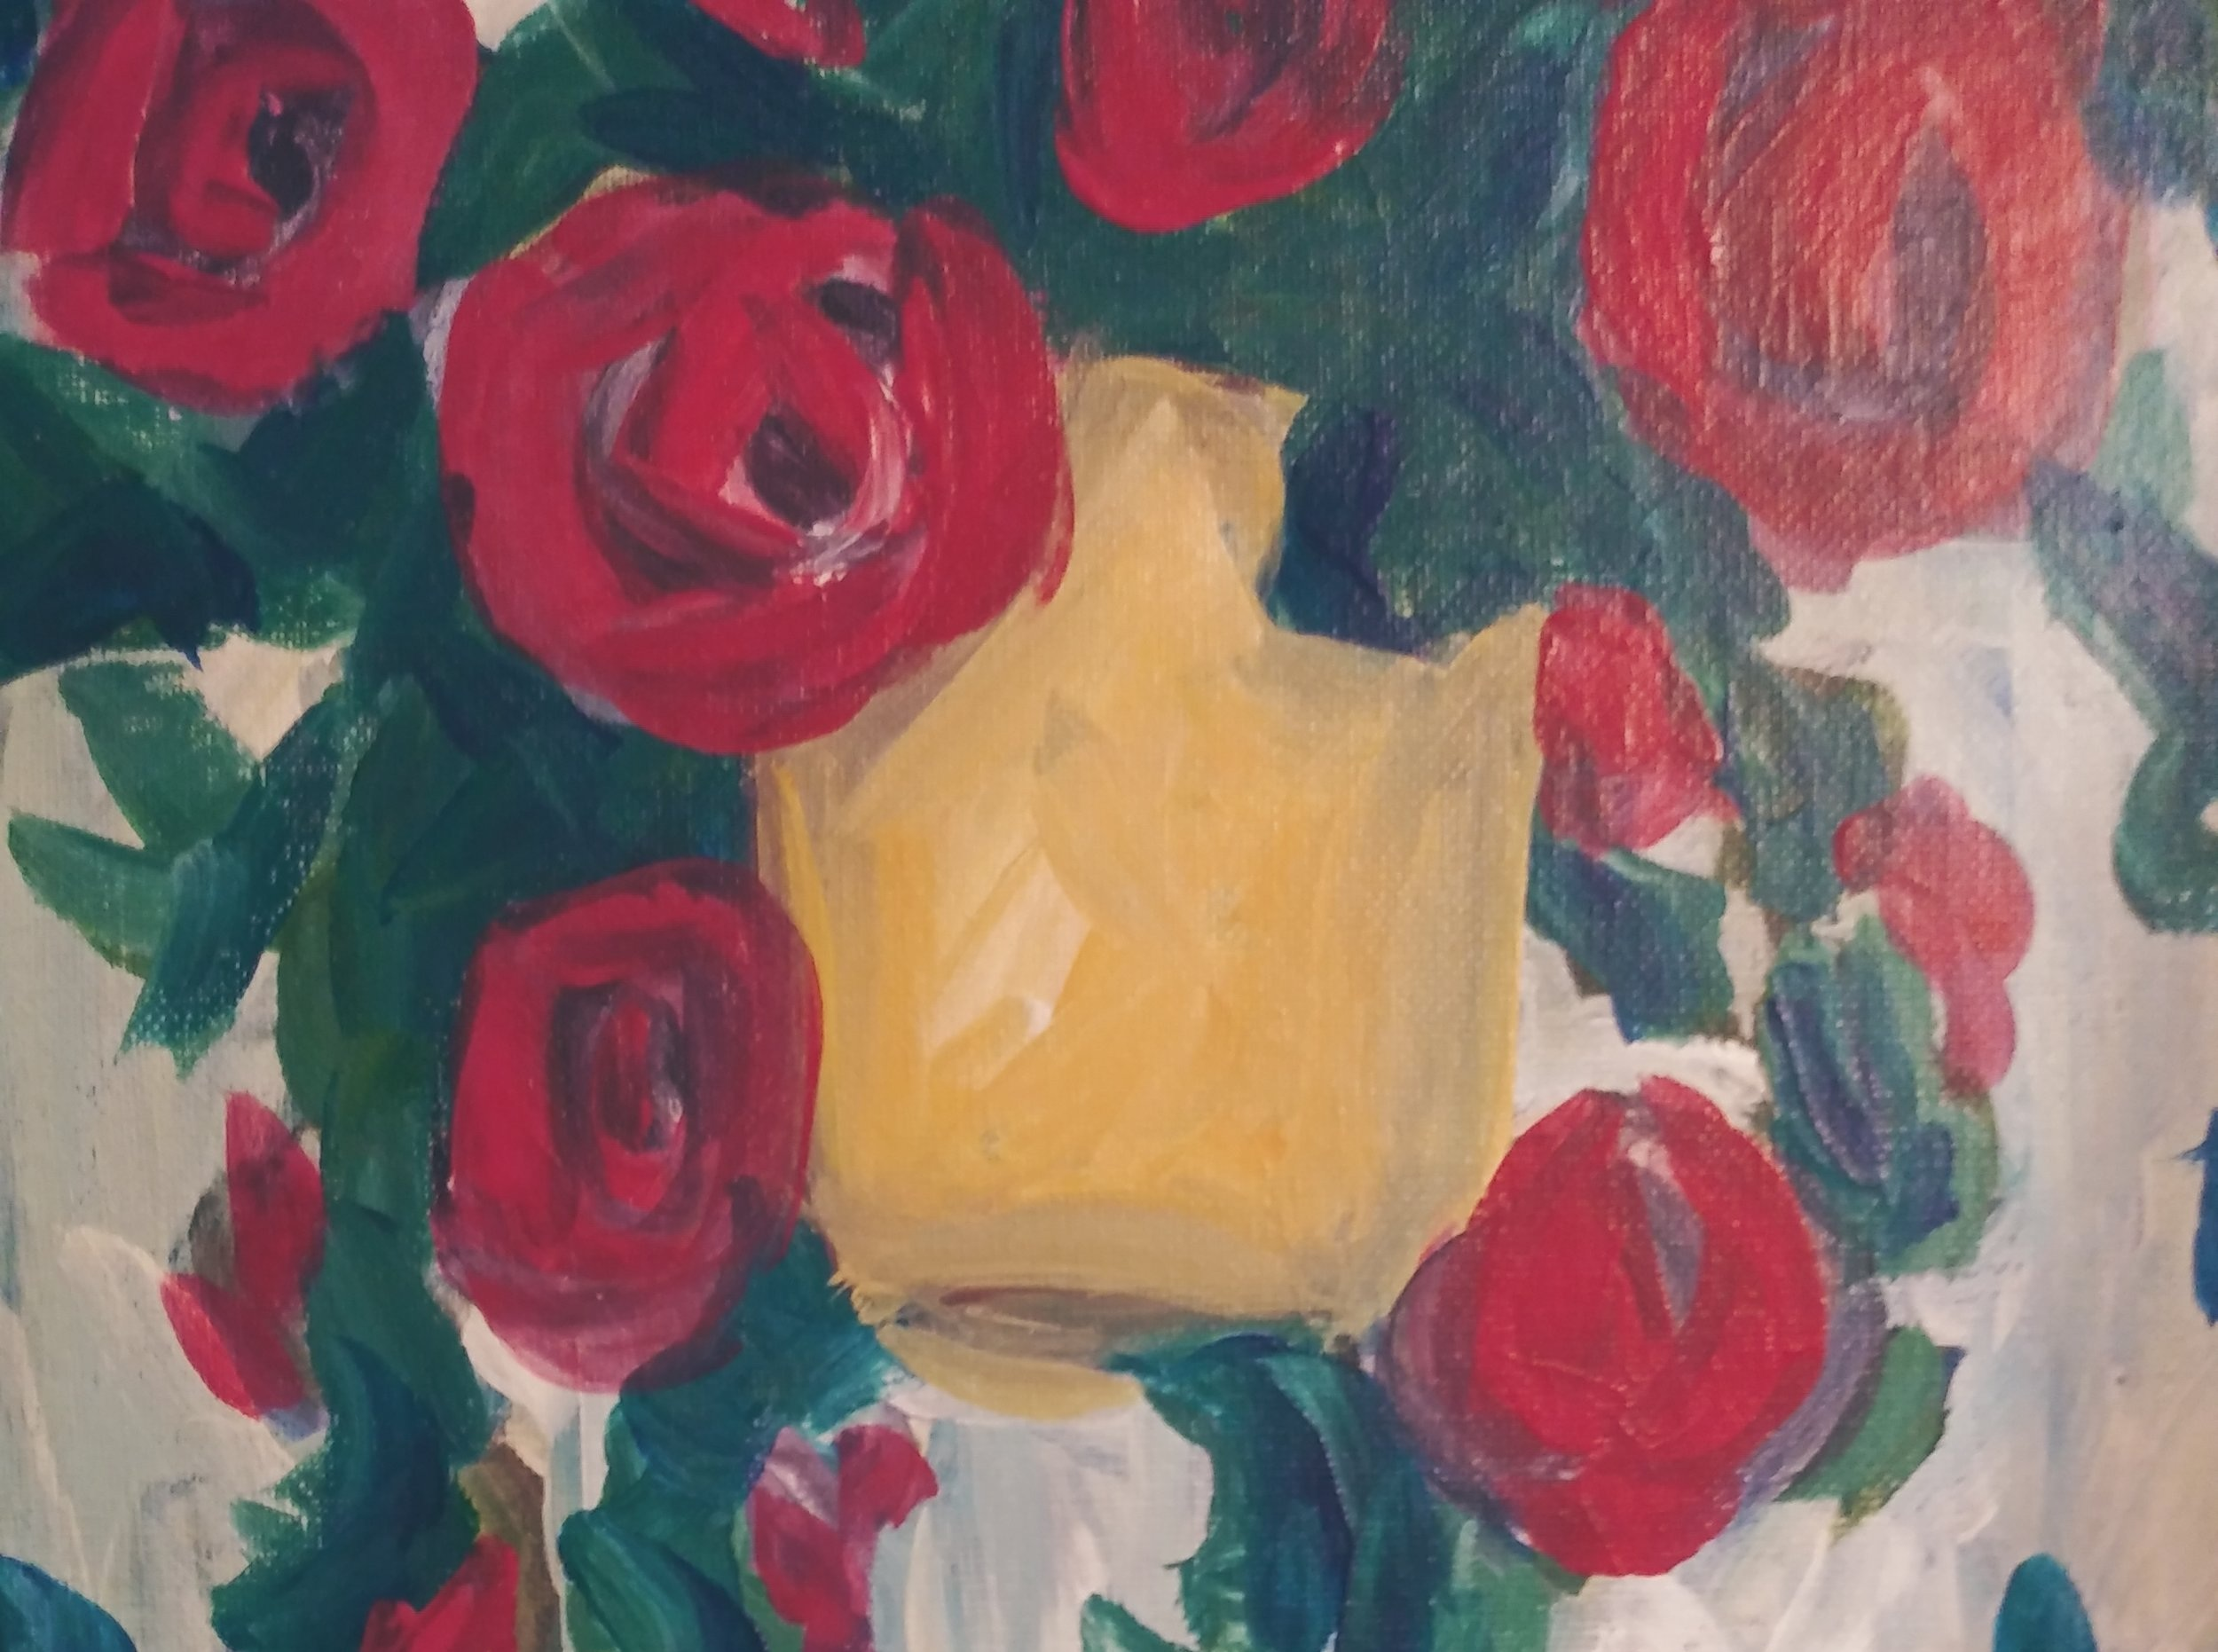 Artwork and events -